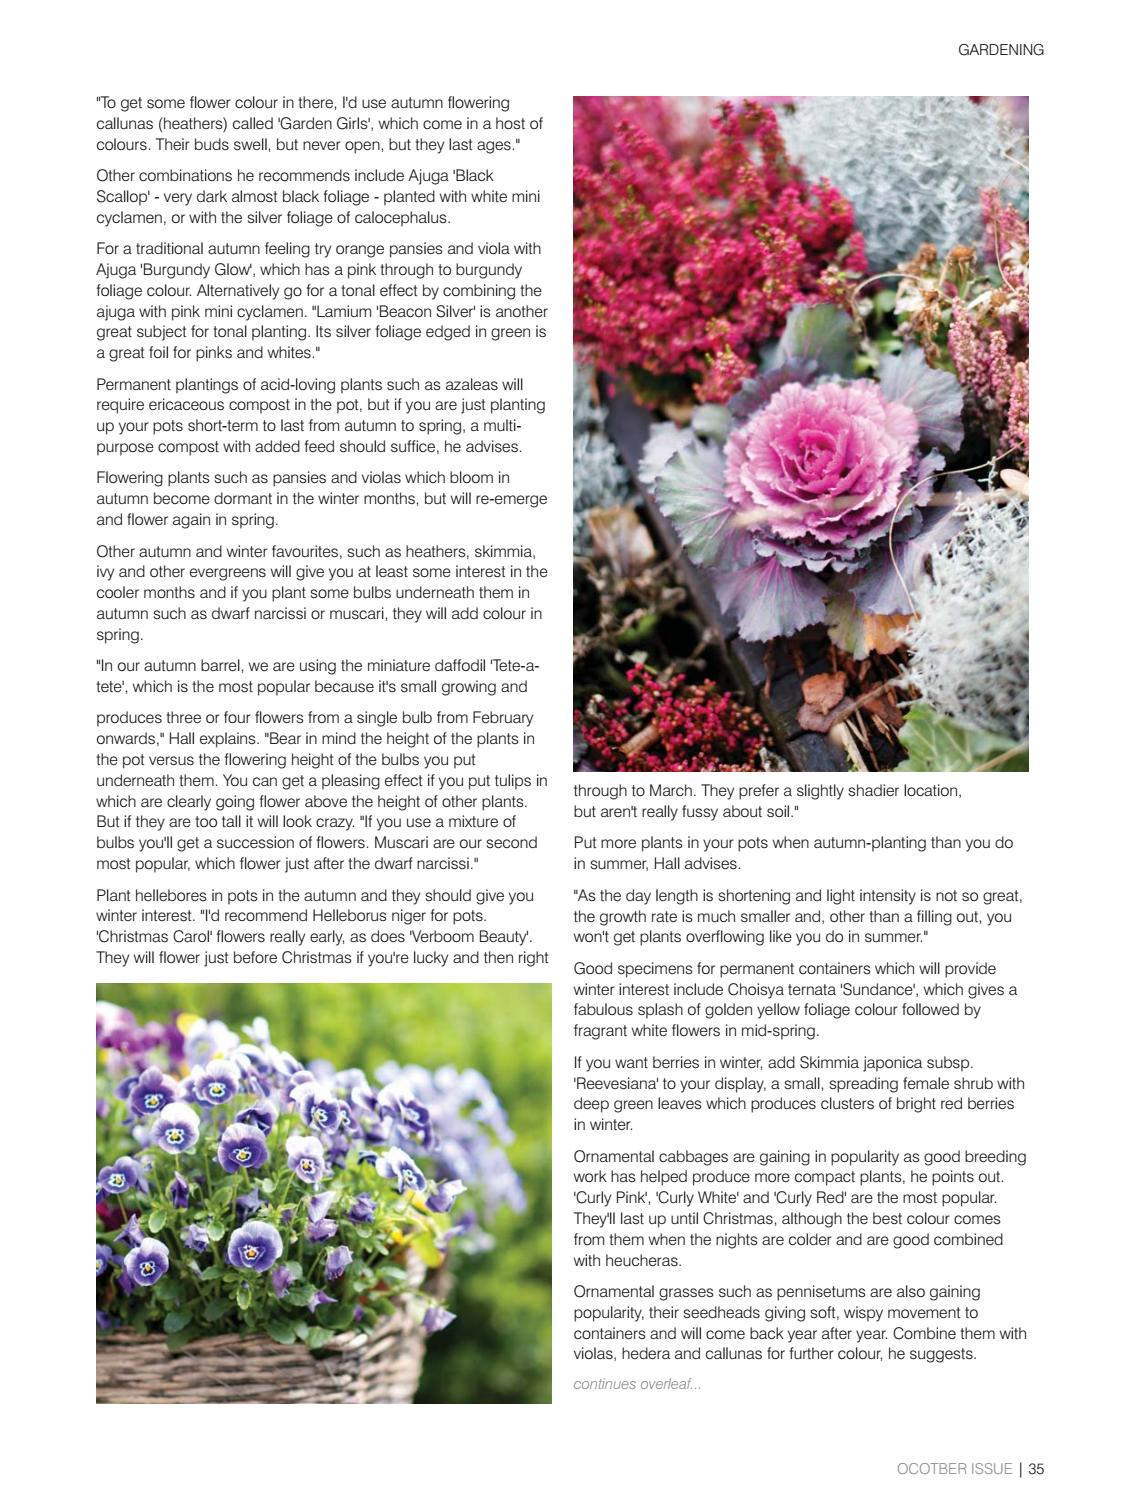 b4e07273 The Jersey Life - October. HOME LIVING ISSUE by The Jersey Life - issuu